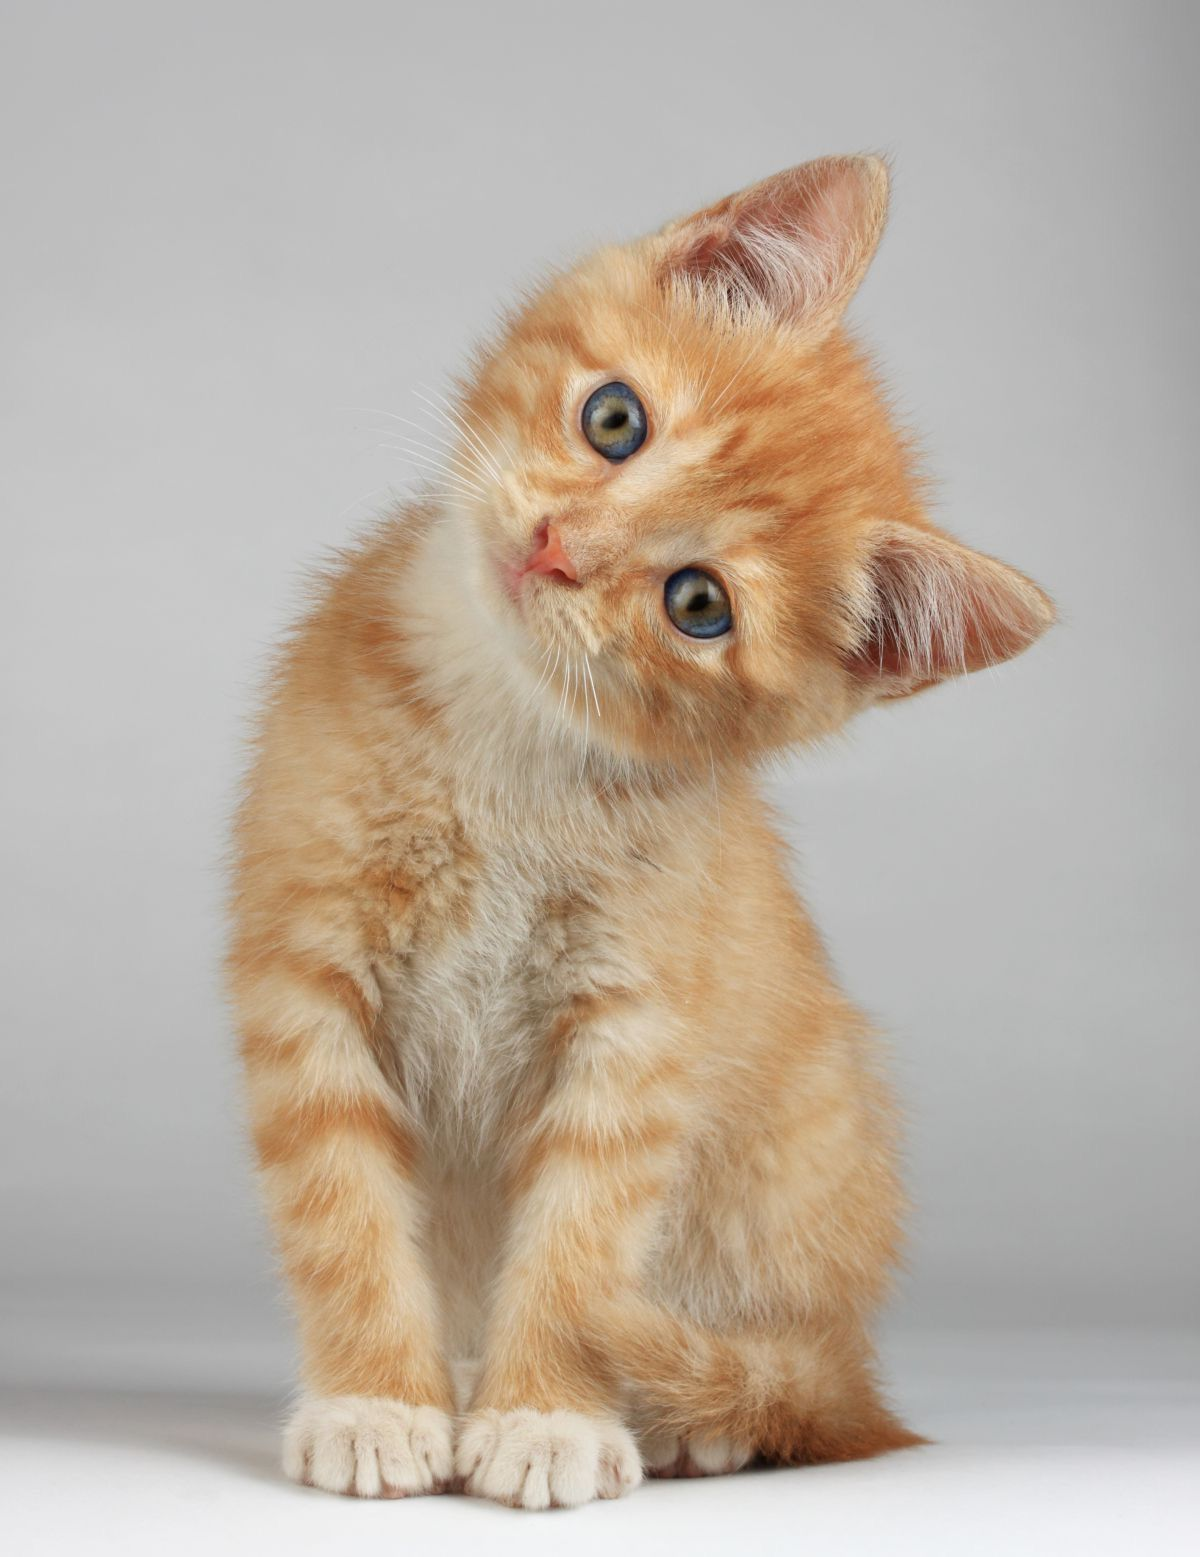 Pin By Carrie Burdine On Animals Kittens Cutest Cute Cats Pets